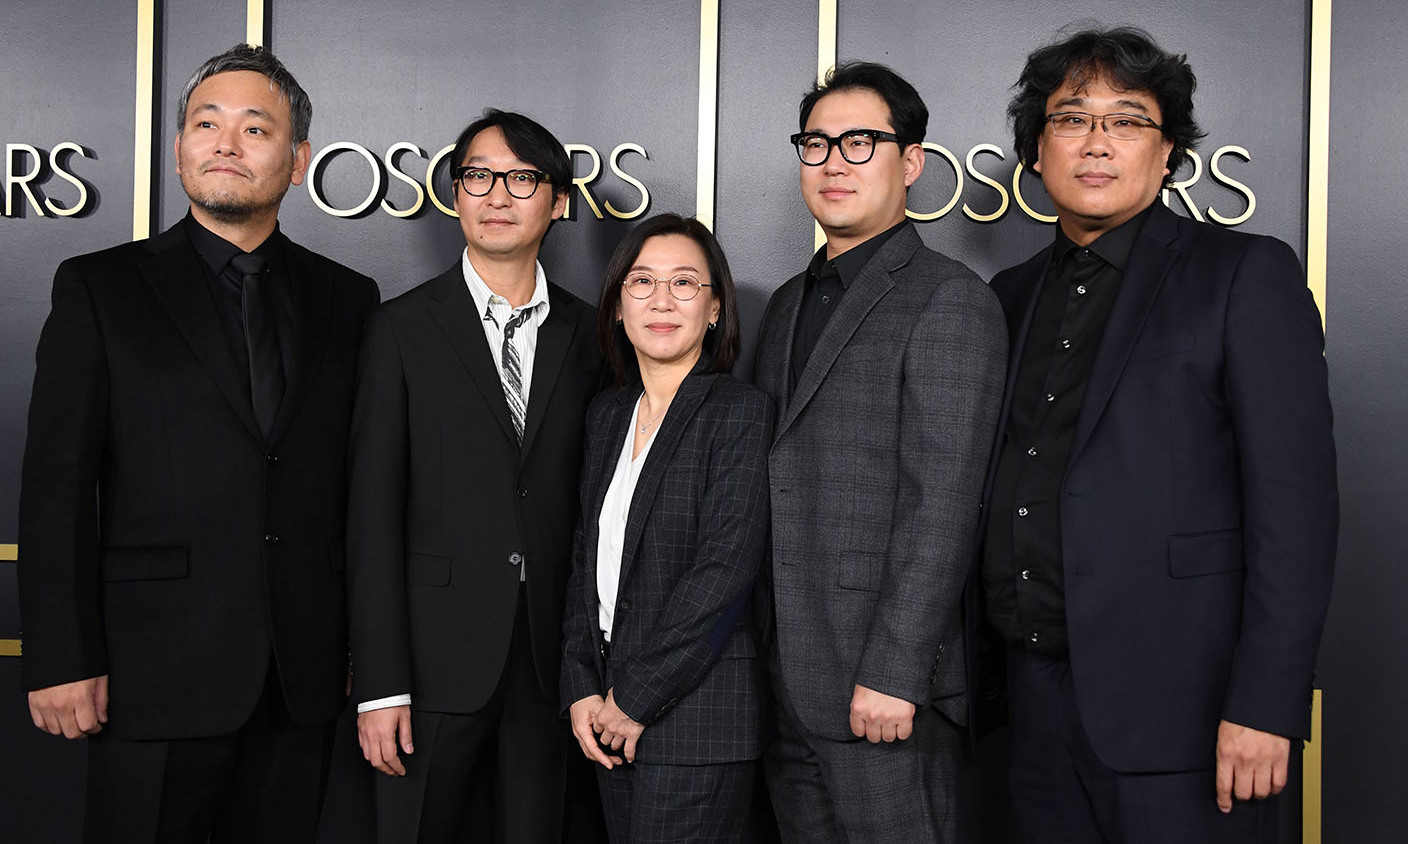 The crew of groundbreaking film <em>Parasite</em>, (L-R) <strong>Ha-jun Lee</strong>, <strong>Yang Jin-mo</strong>, <strong>Sin-ae</strong>, <strong>Han Jin Wan</strong> and director <strong>Bong Joon Ho</strong>, had a coordinated arrival in black suits at the event. The critically acclaimed film is up for six nominations, including Best Picture. <p> Photo: &copy; VALERIE MACON/AFP via Getty Images